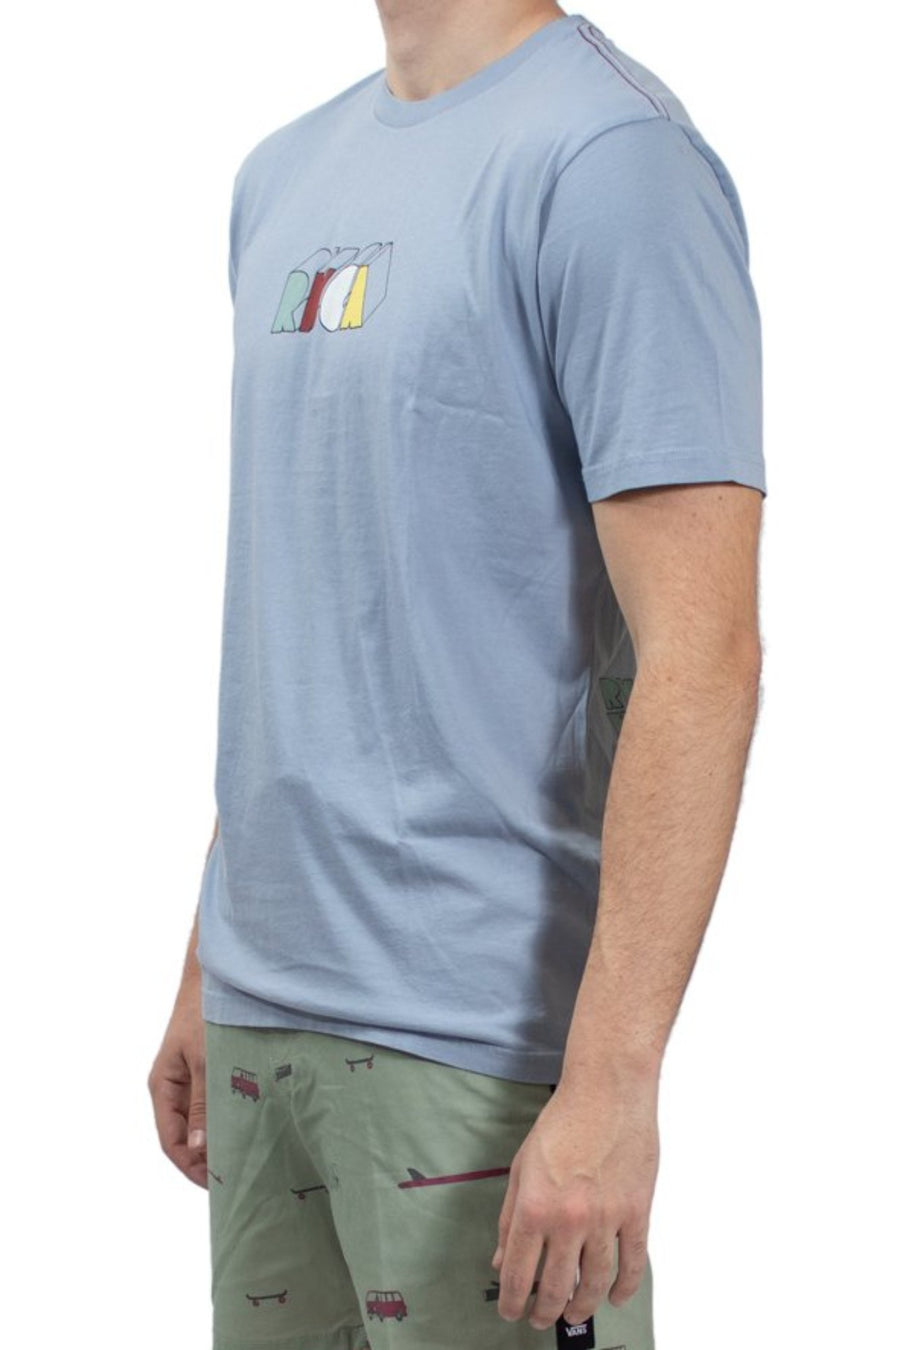 RVCA Perspect T-Shirt - Dusty Blue